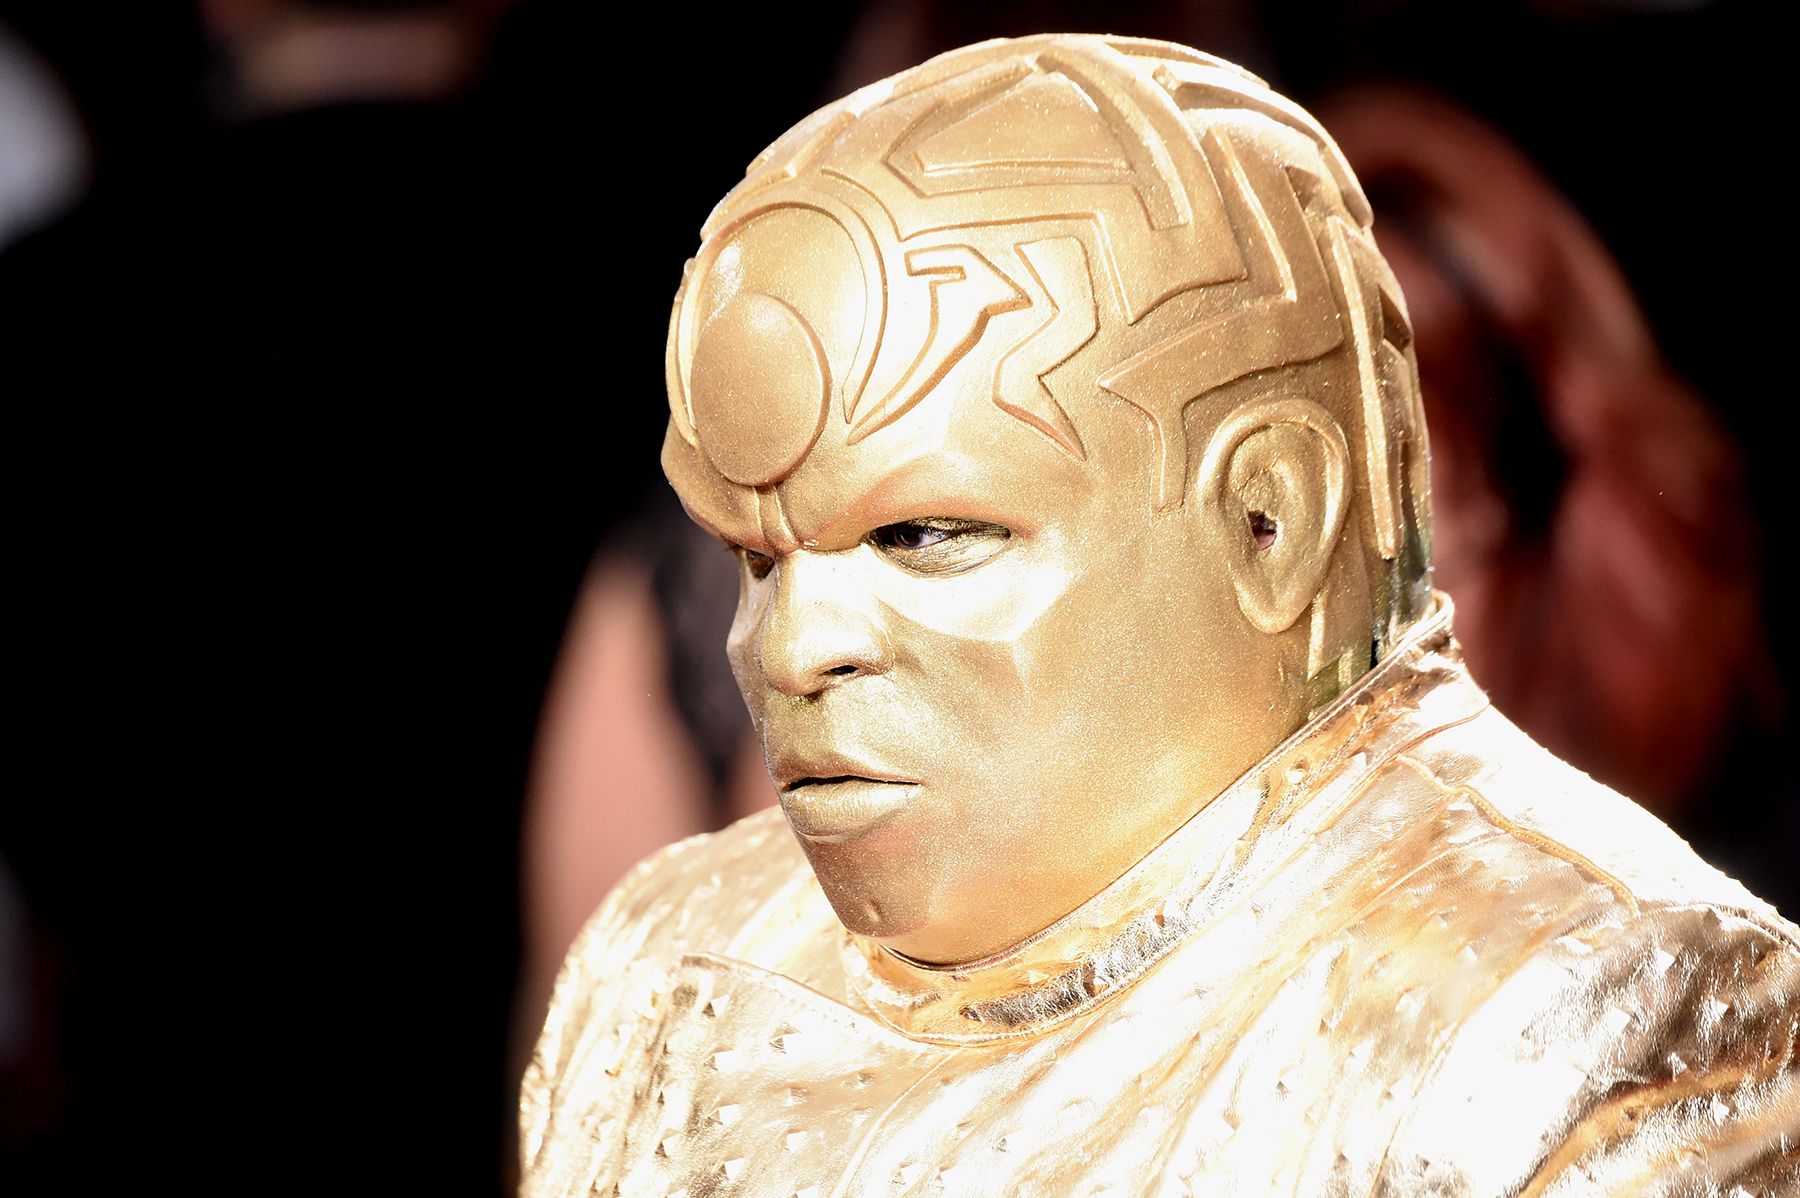 Gnarly Davidson (aka CeeLo Green) attends The 59th GRAMMY Awards.